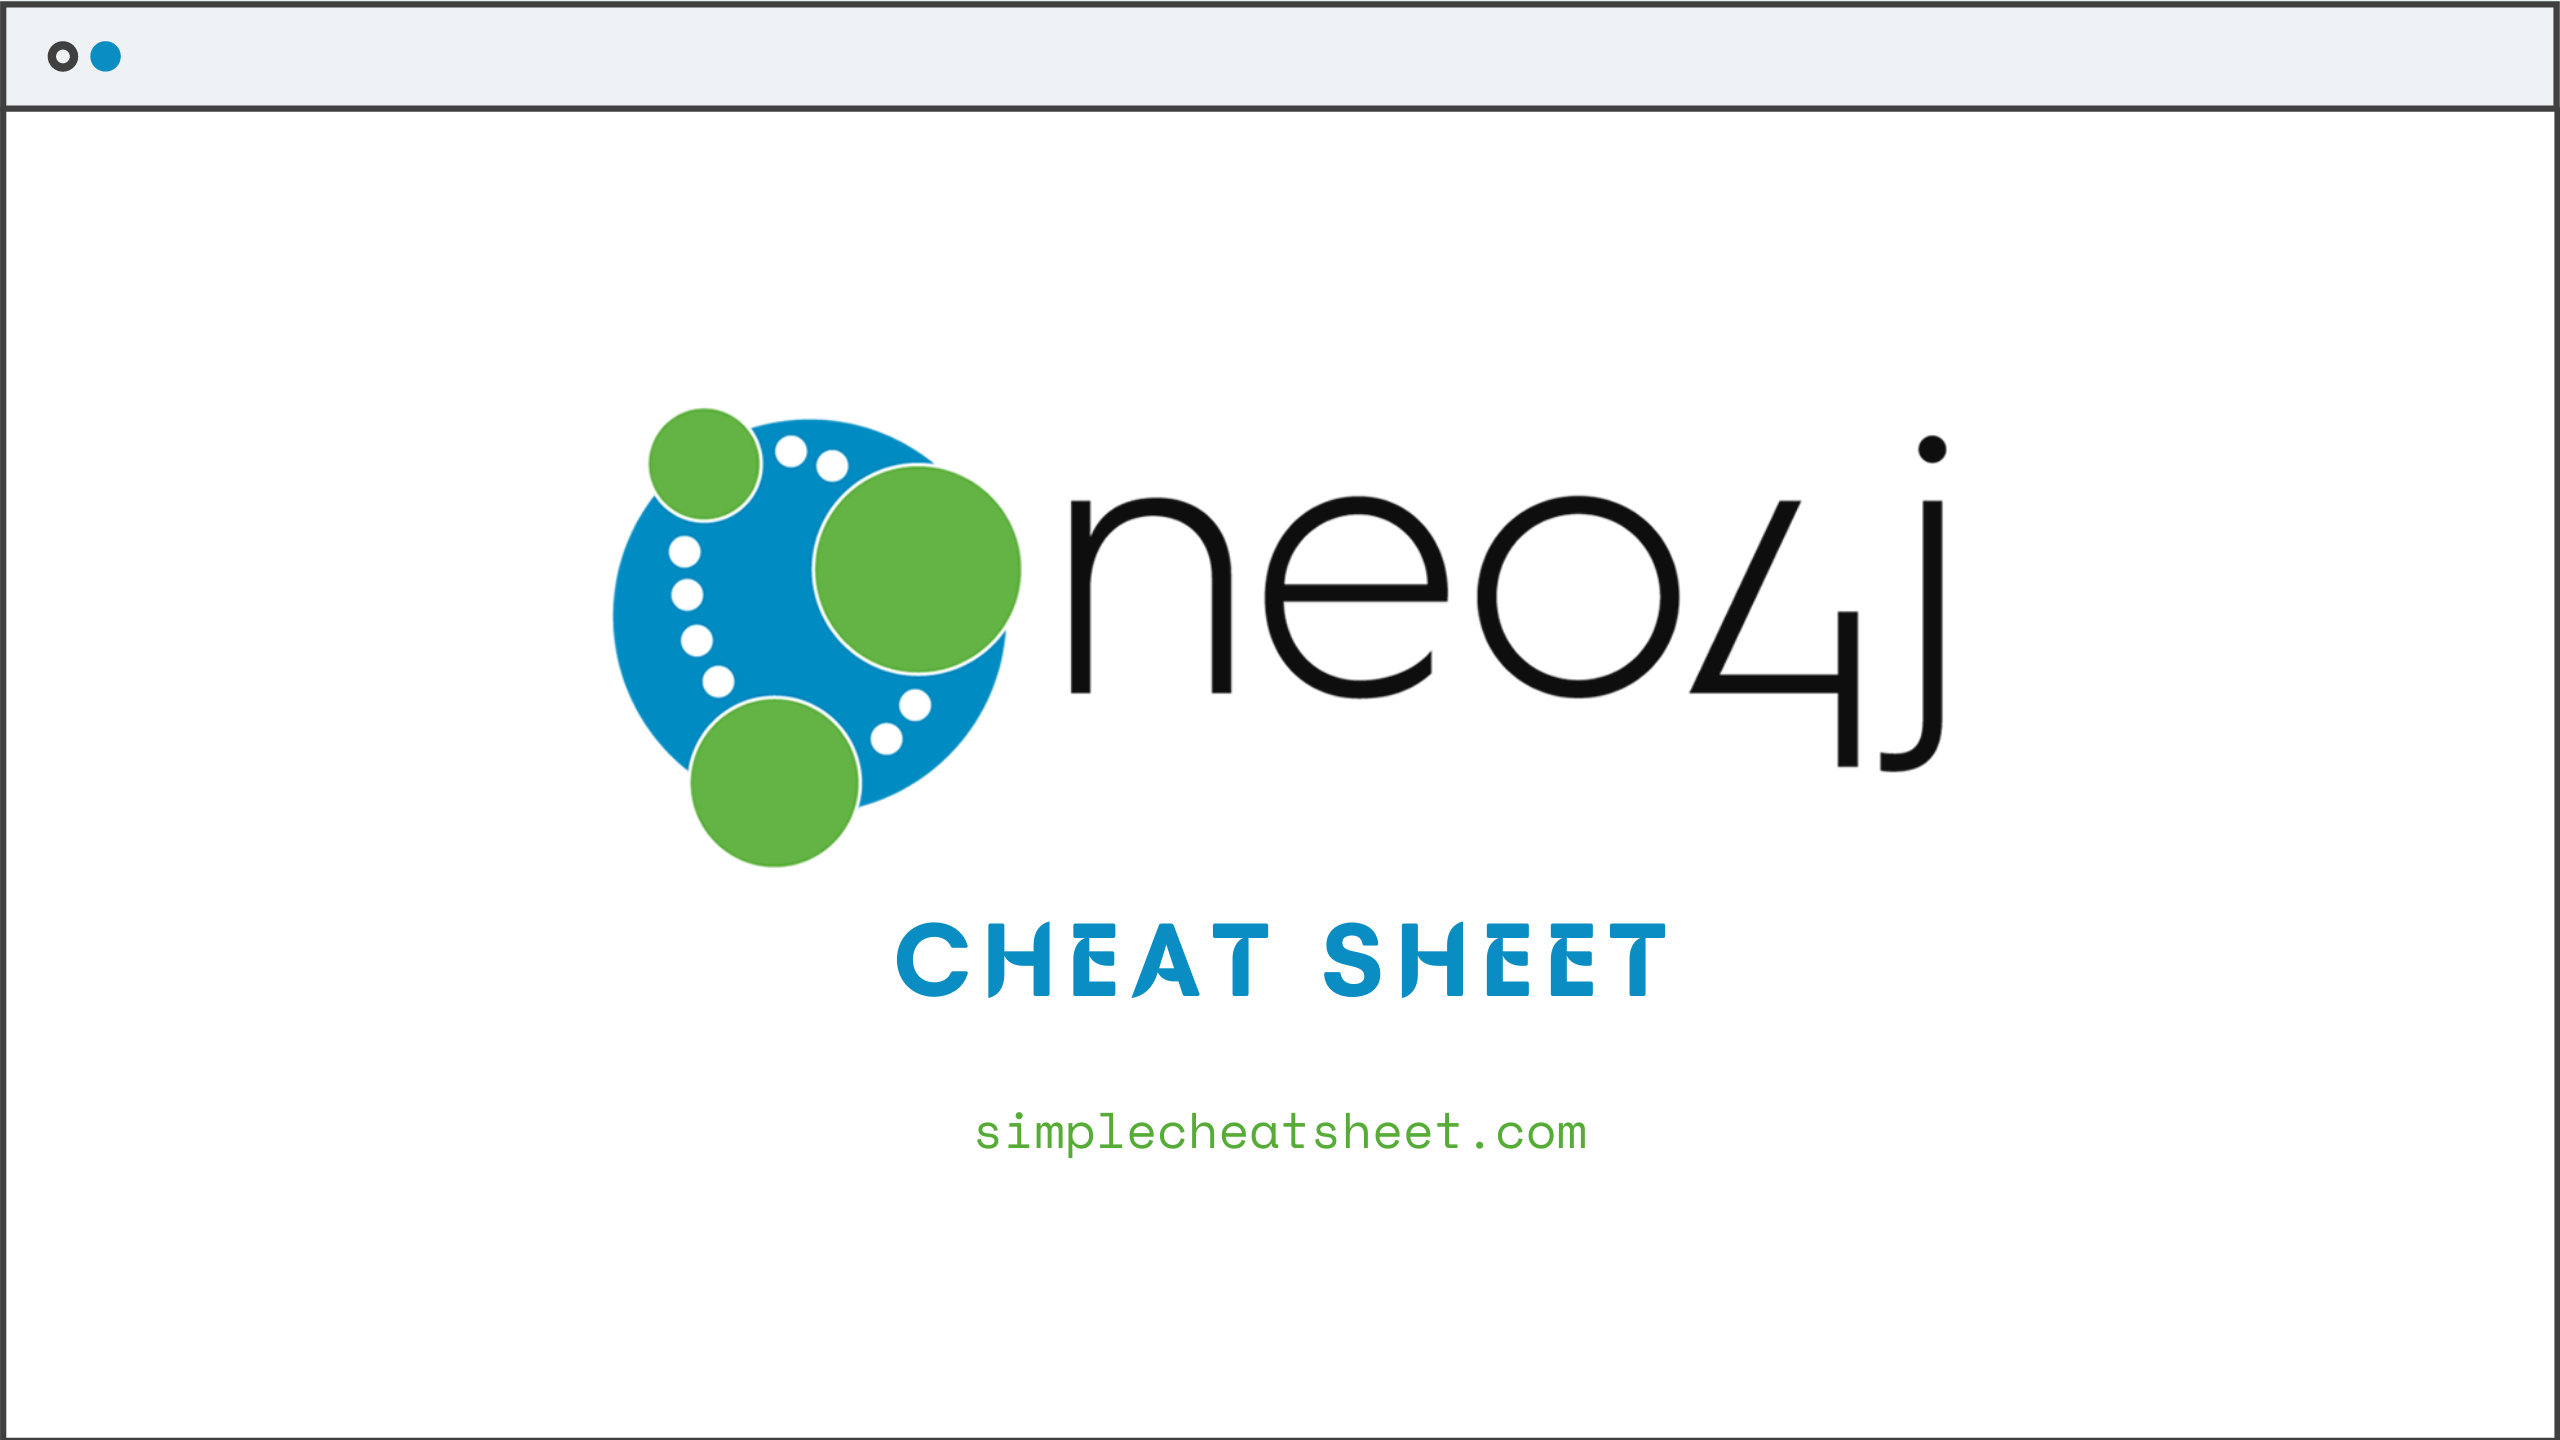 neo4j cheat sheet